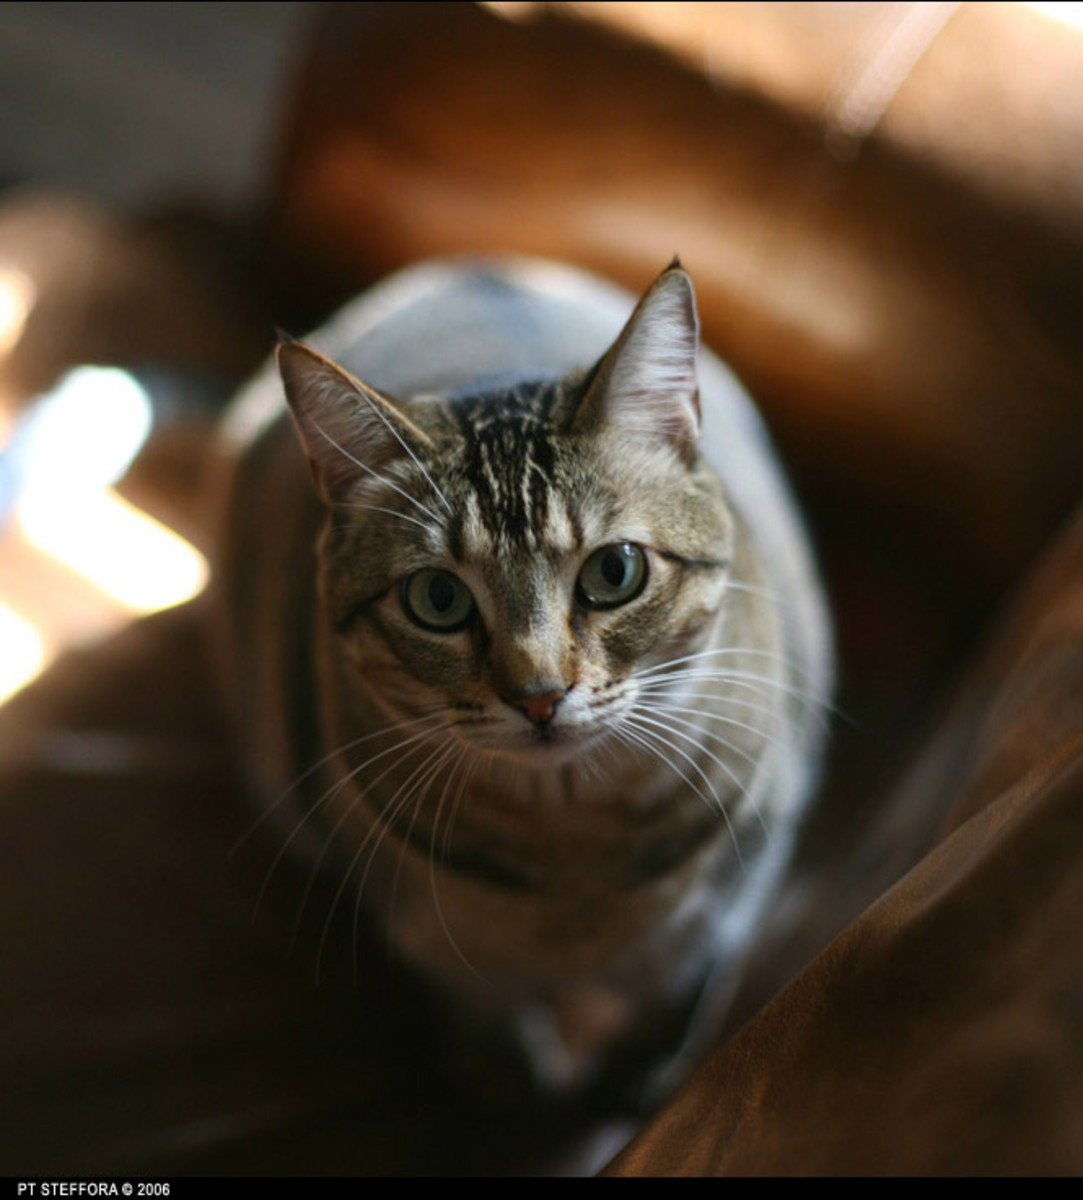 Cat Language: Learn What Your Cat Is Saying & How to 'Talk' to Them